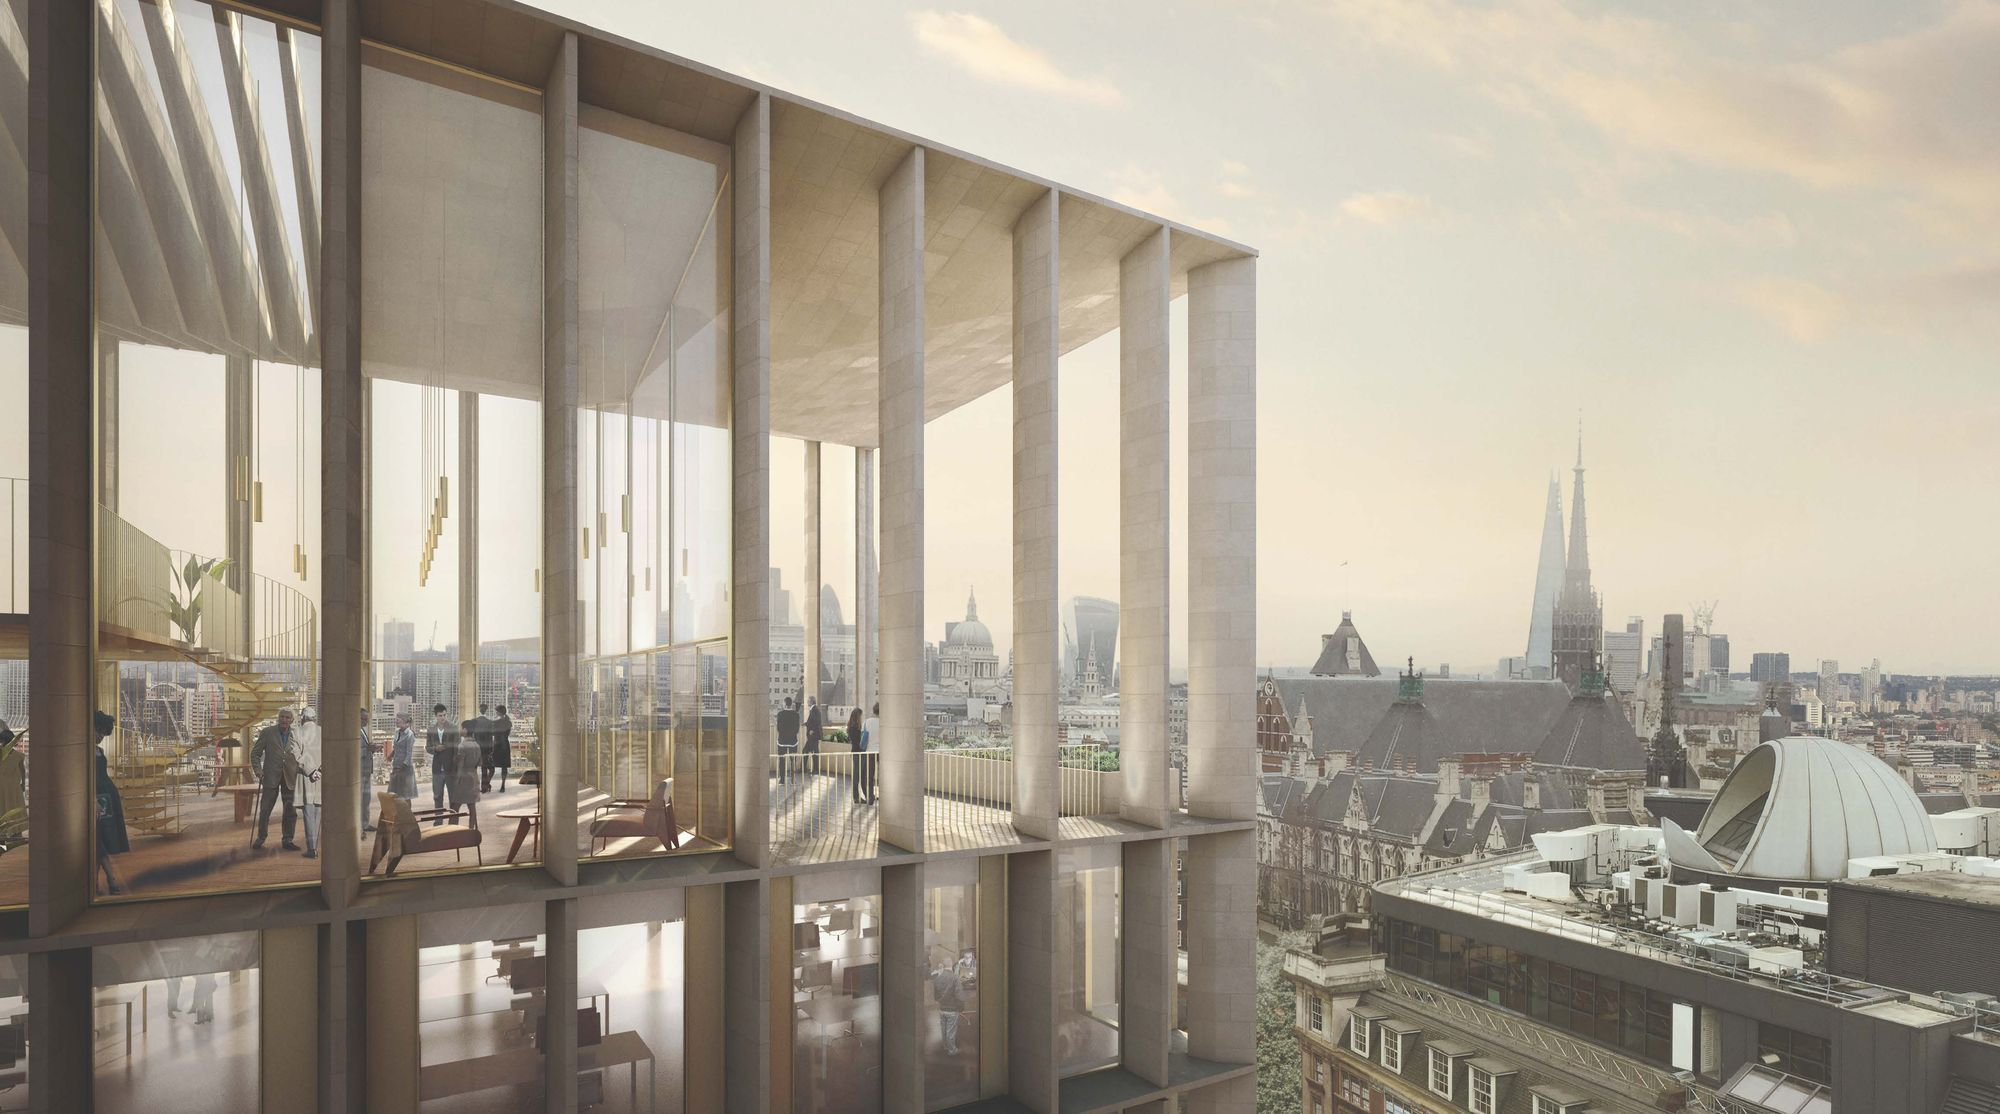 herzog and de meuron the phil Herzog and de meuron has been preparing for the revamp of stamford bridge stadium when a court order came to stop their plans.